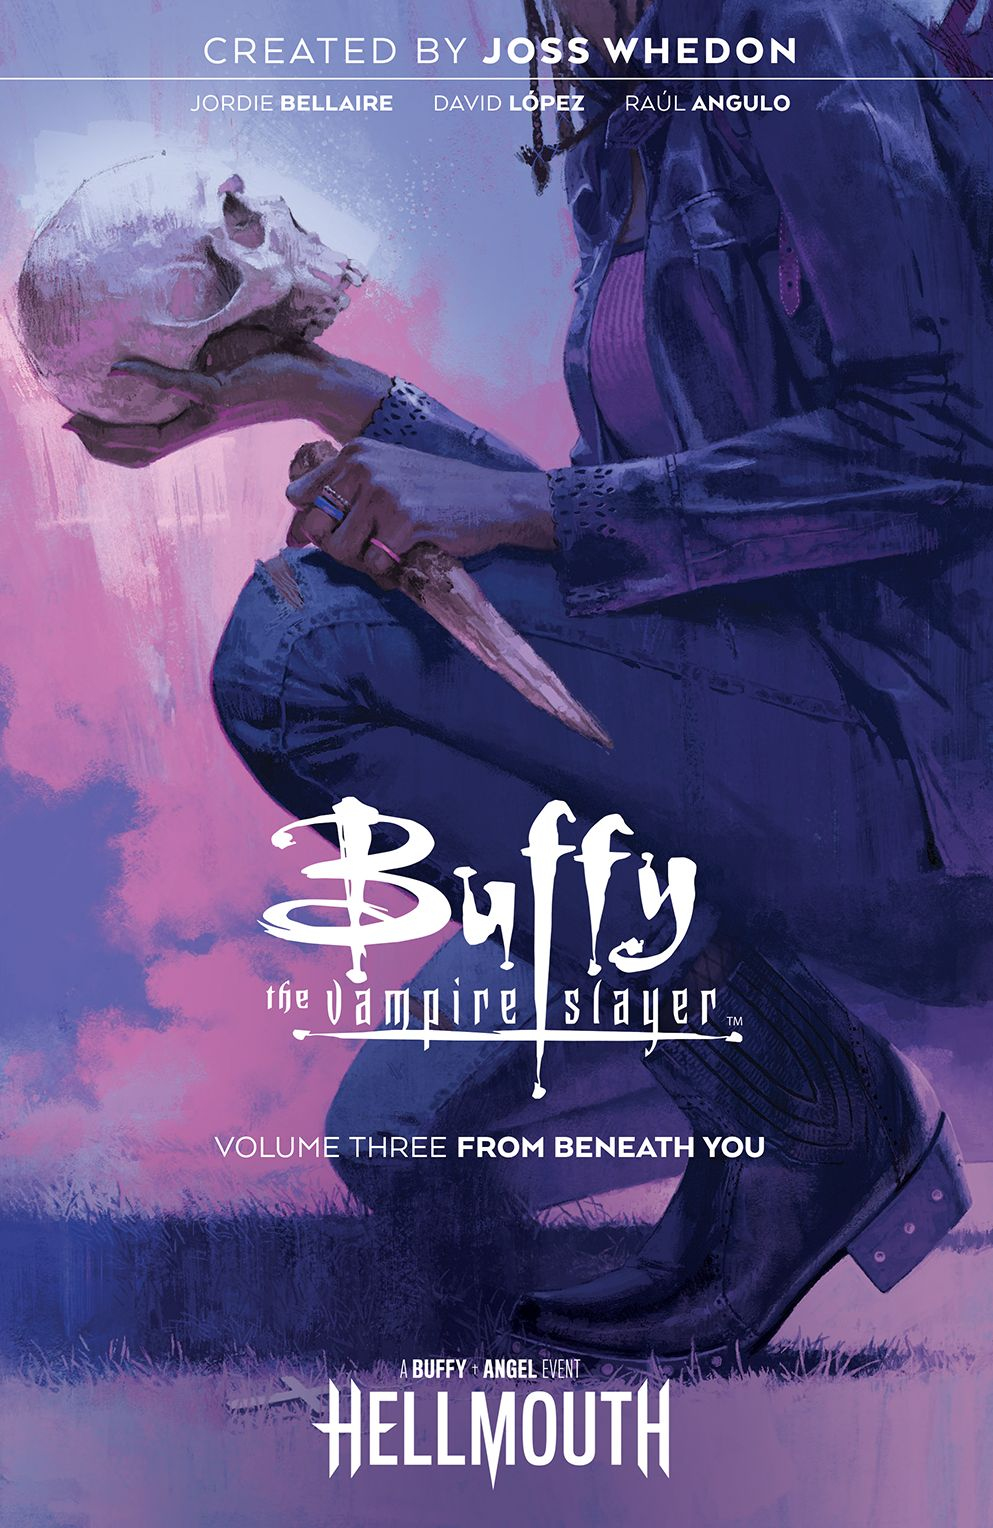 Buffy The Vampire Slayer Vol. 3 SC